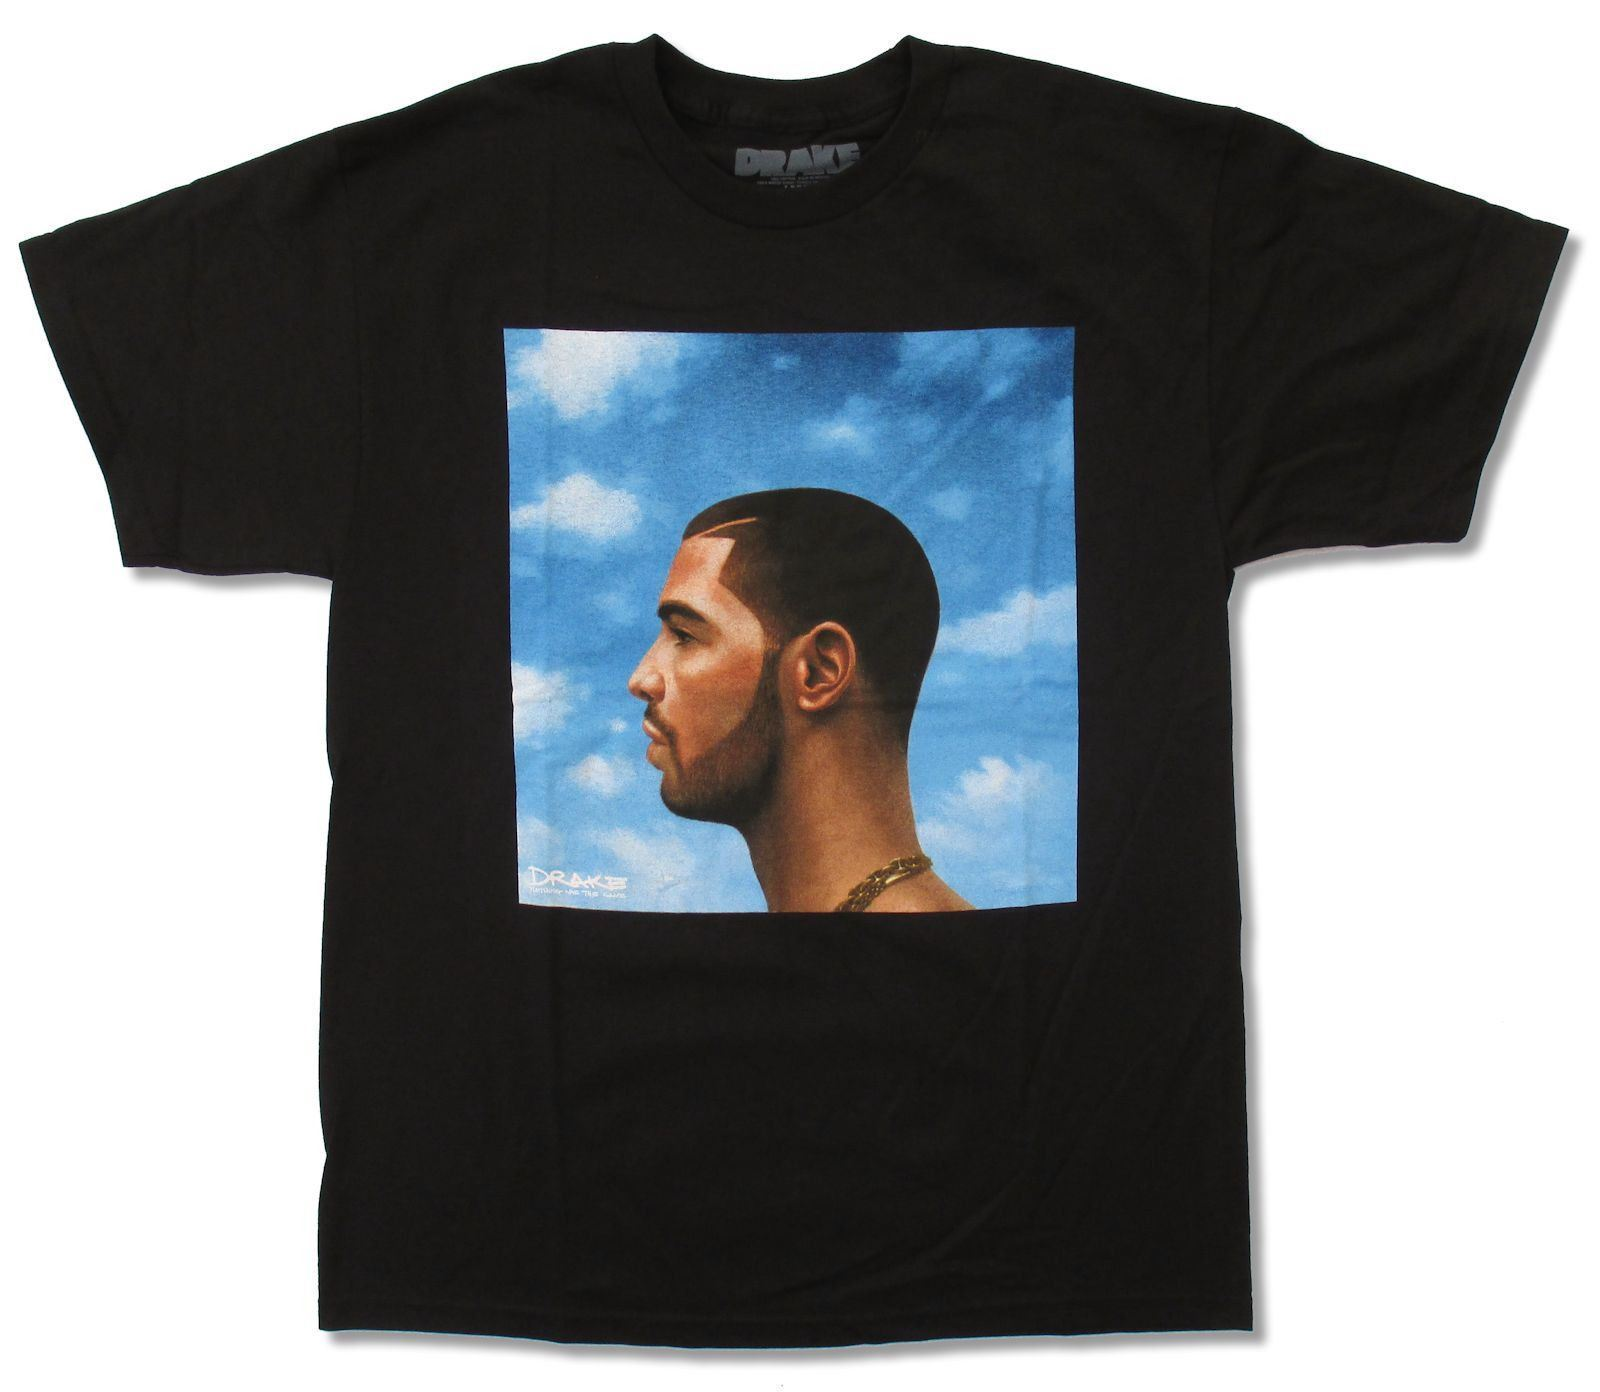 DRAKE OLDER COVER BLACK T-SHIRT NEW OFFICIAL RAP SINGER NOTHING WAS THE SAME Cotton Fashion Men T Shirt